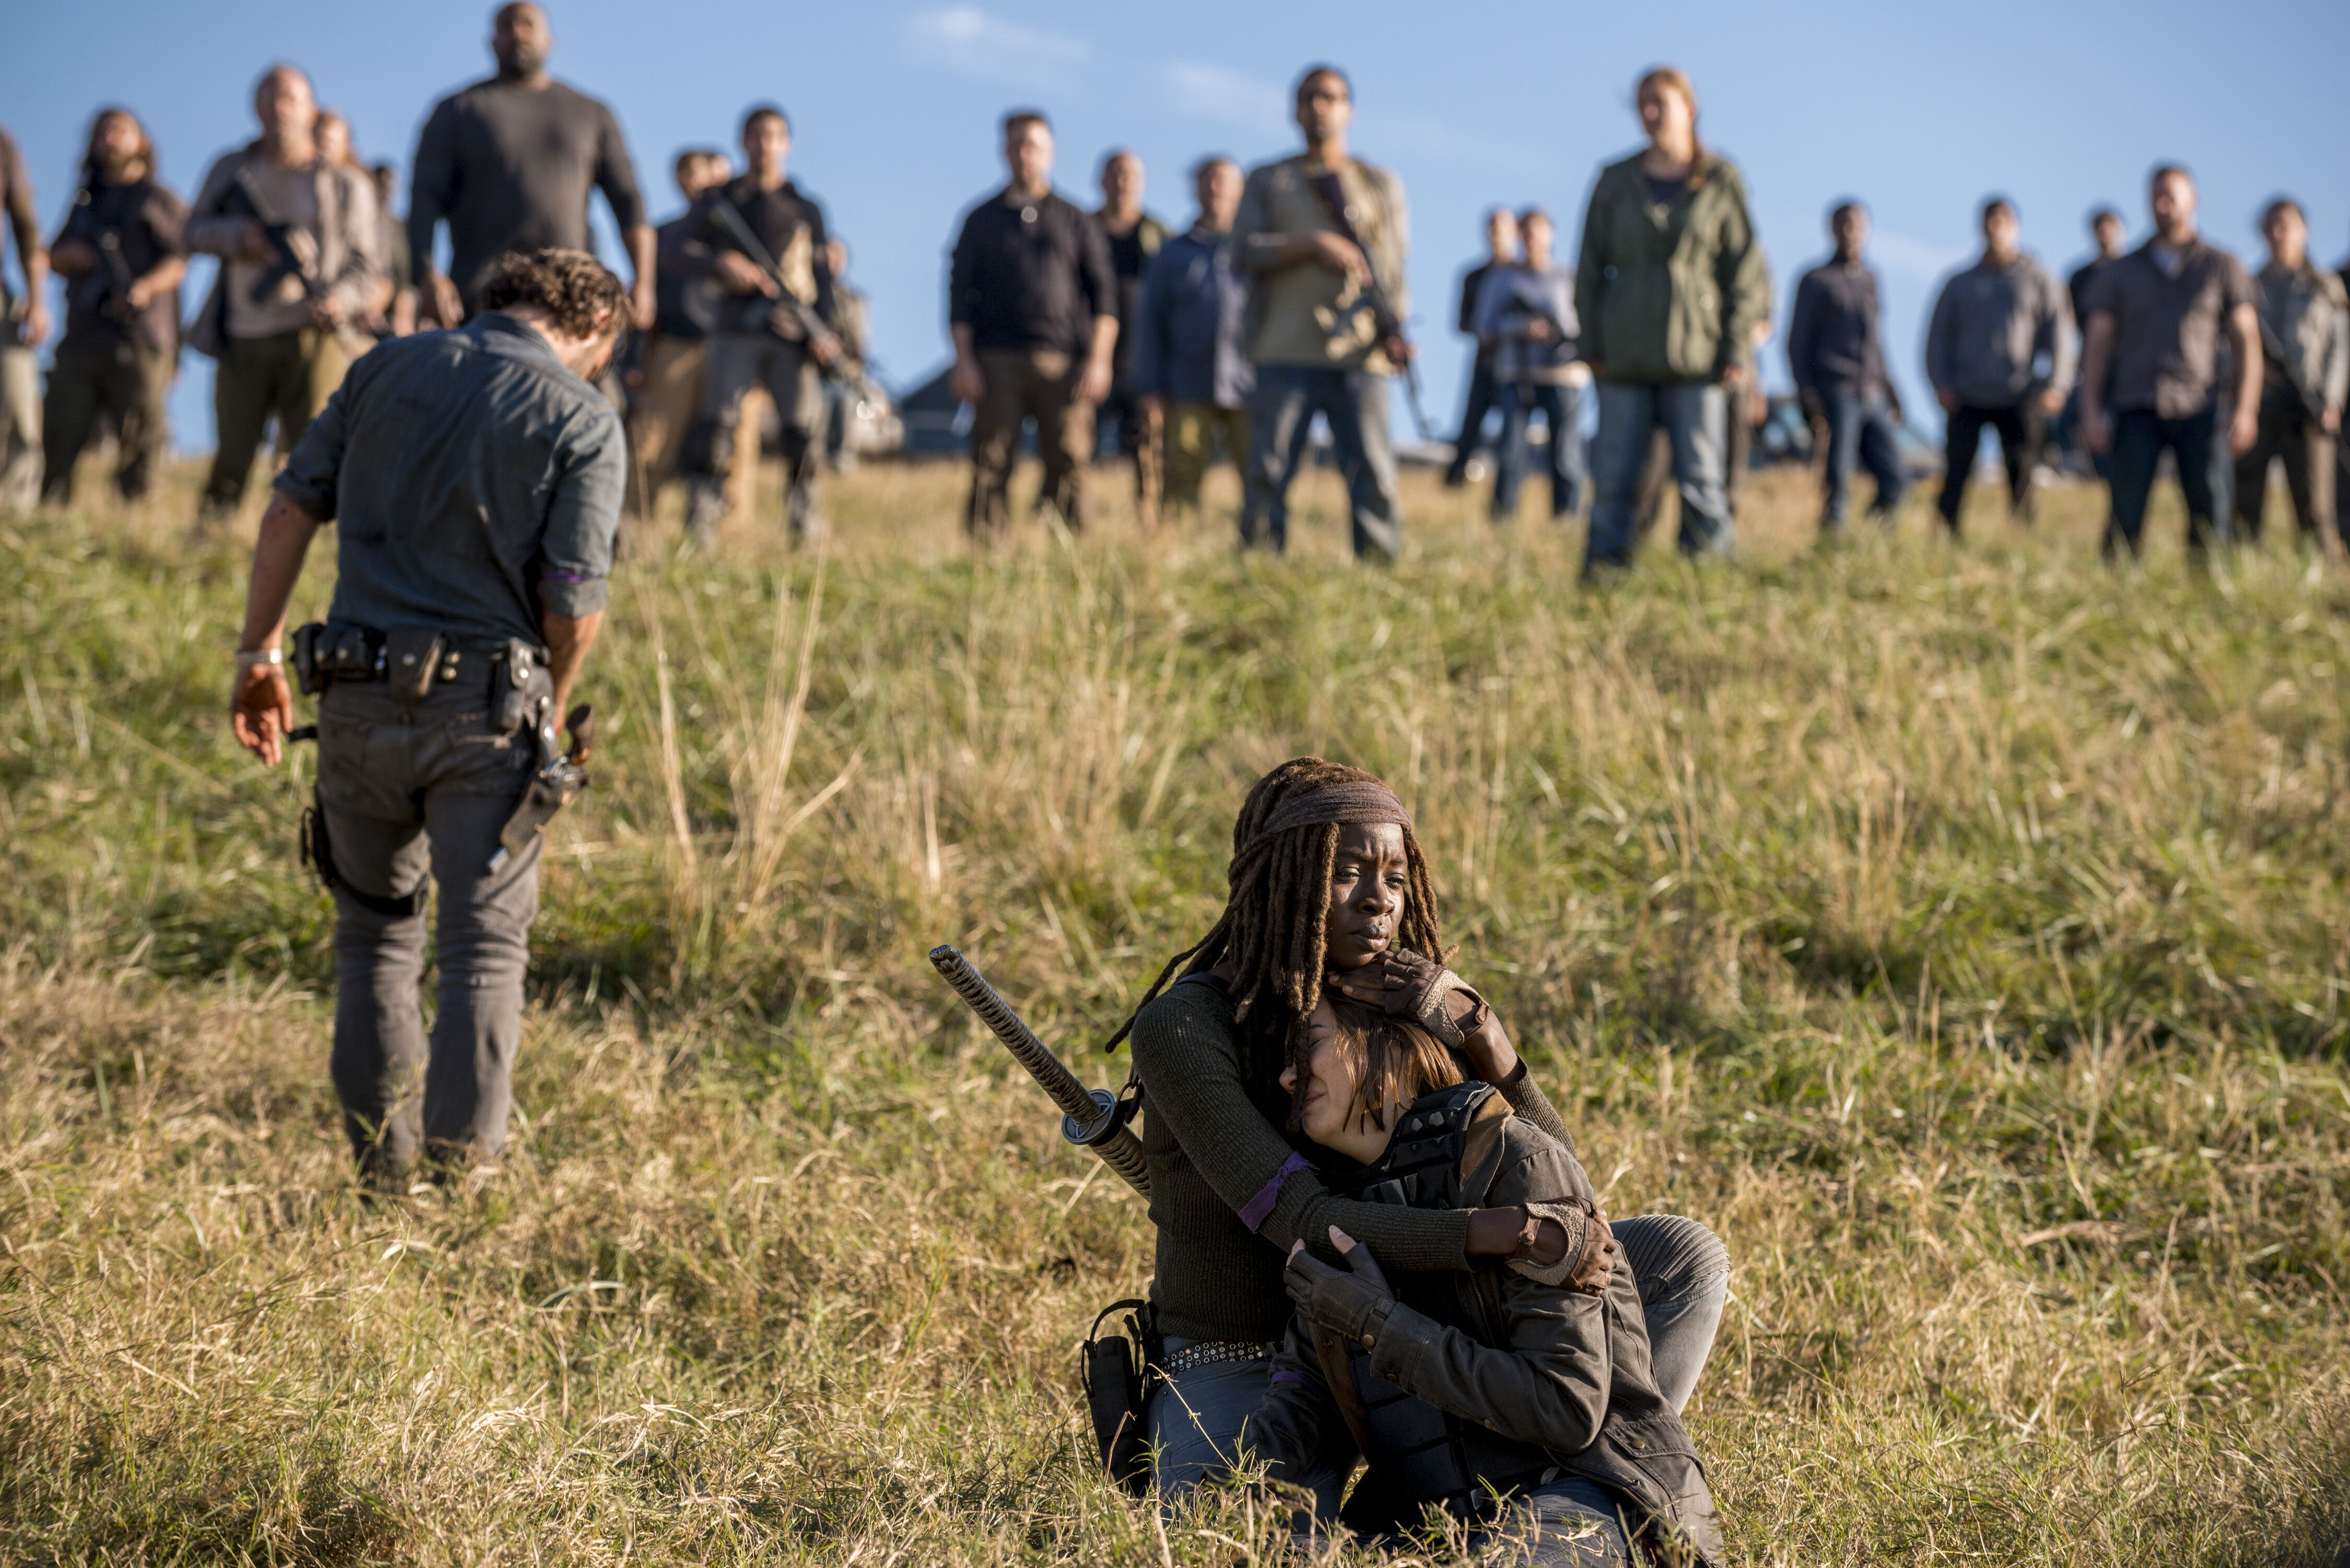 AMC is working on a new Walking Dead spin-off series